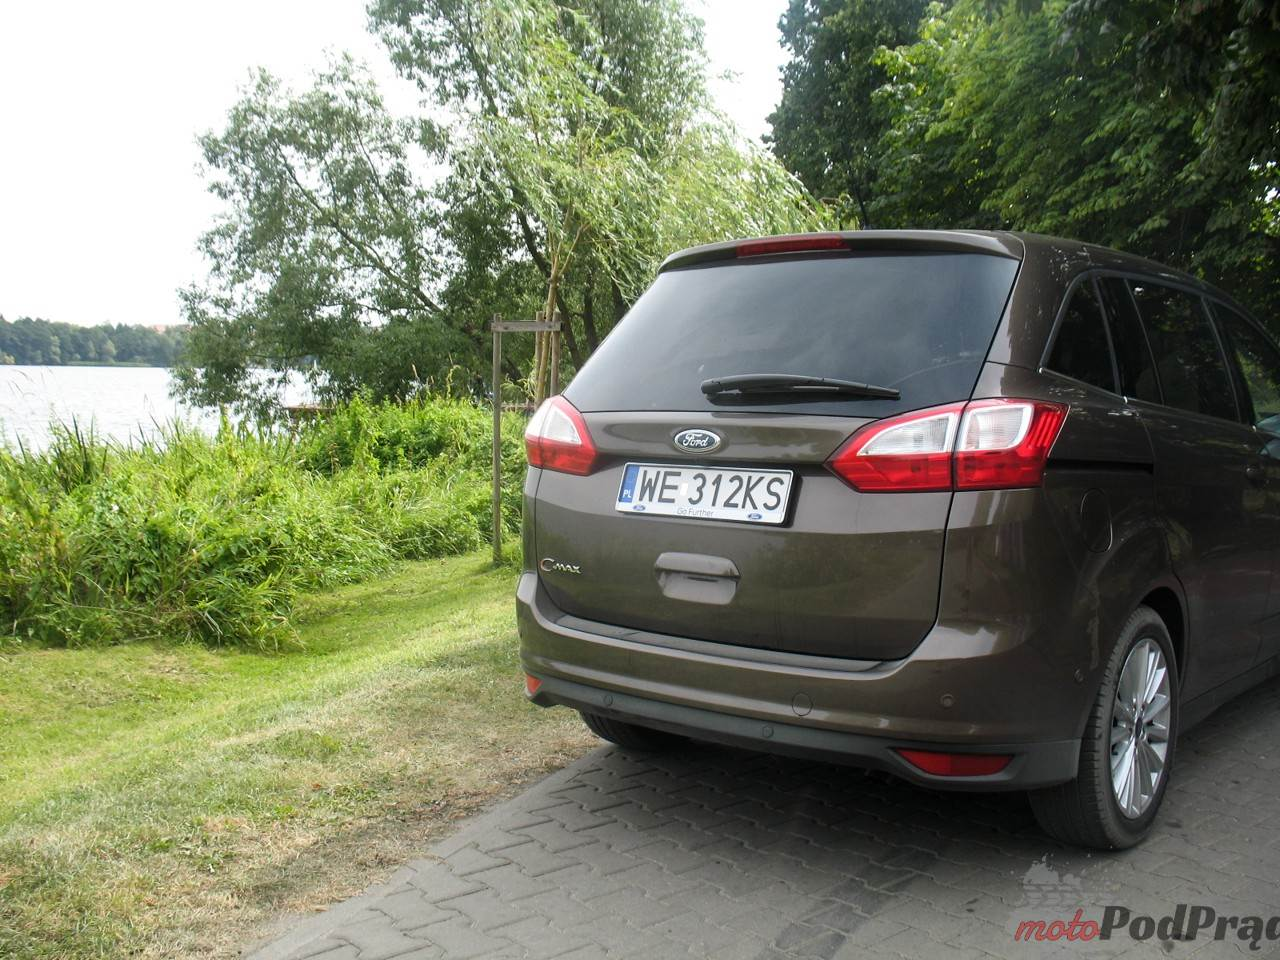 IMG 0477 Test: Ford Grand C Max 2.0 TDCi 150 KM